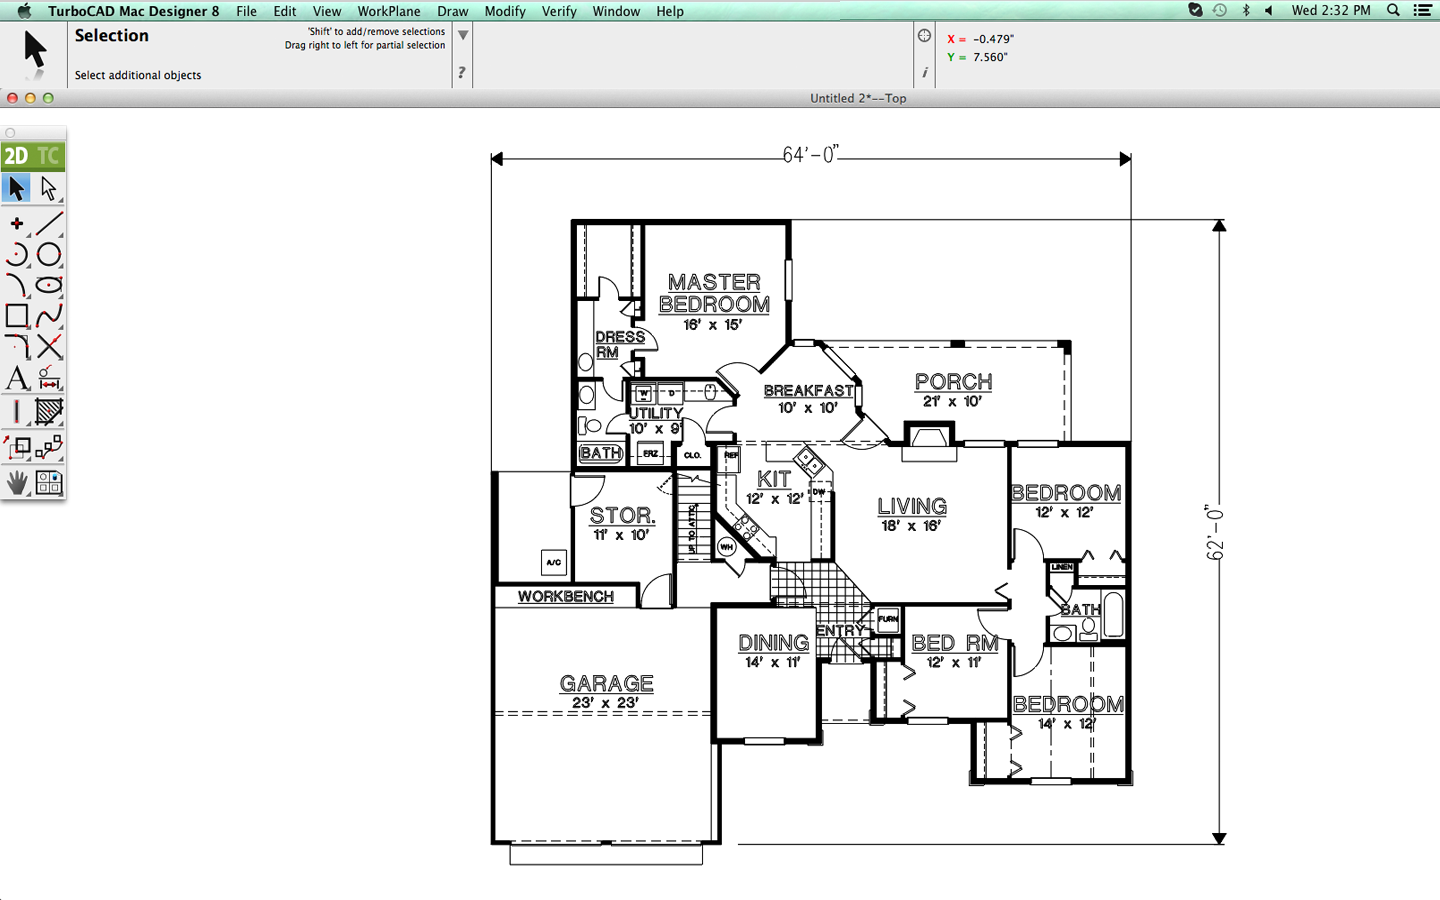 Turbocad for apple mac paulthecad Home plan creator